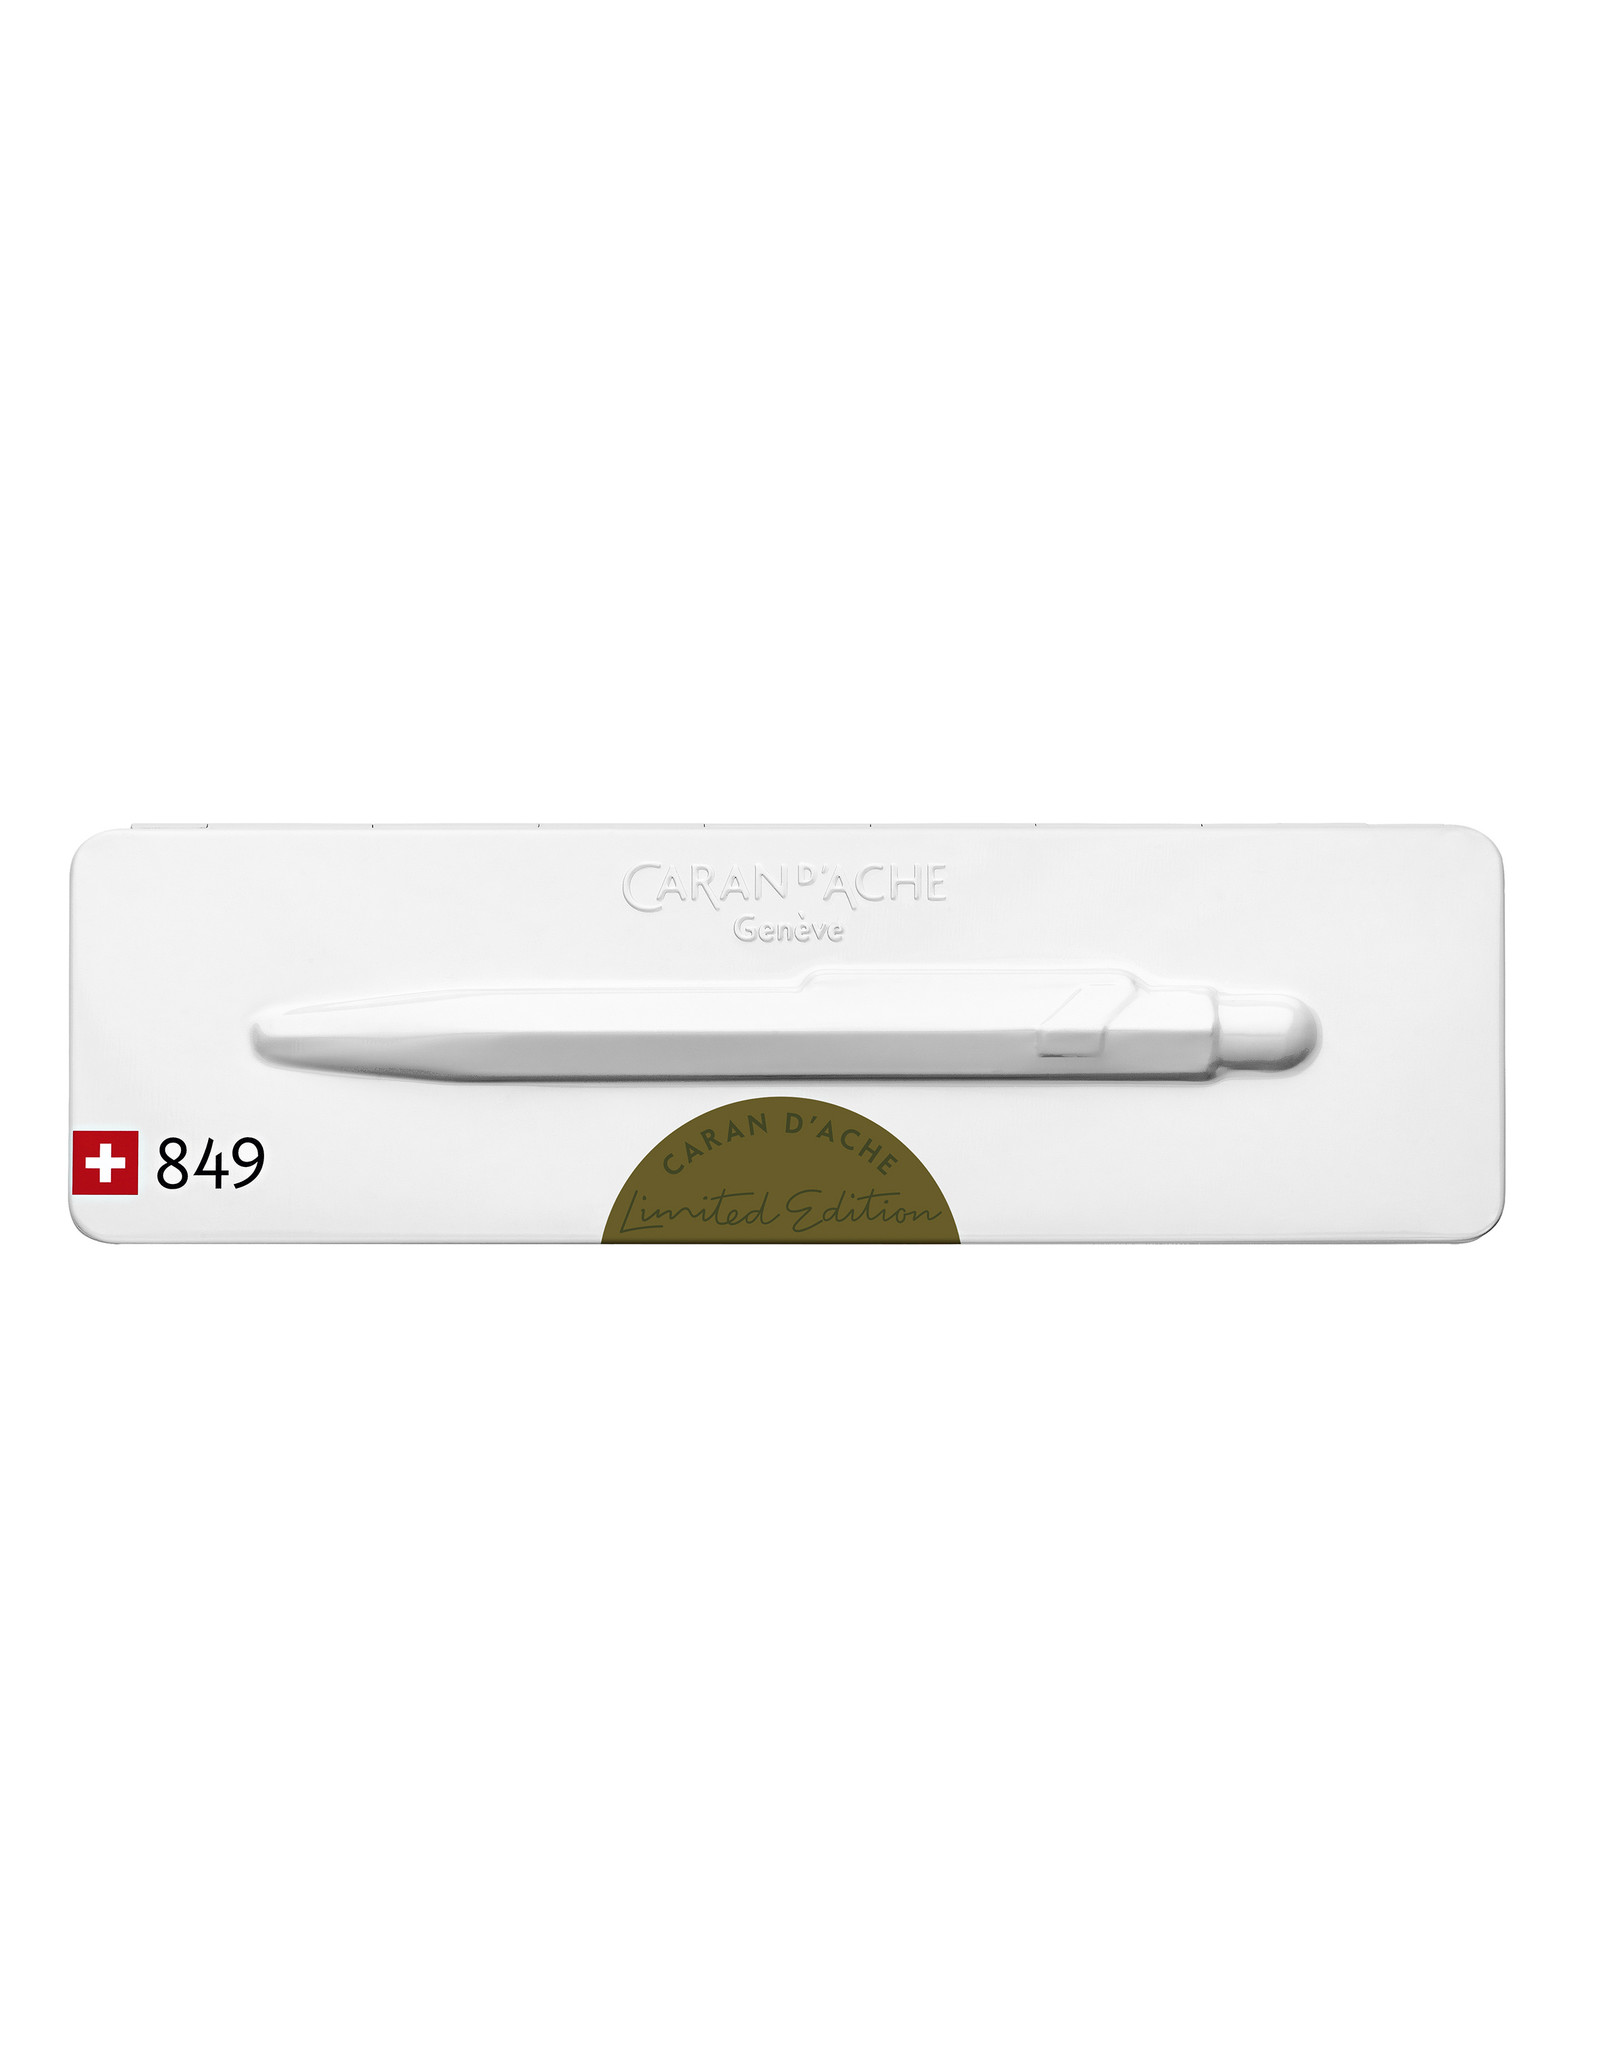 Caran d'Ache 849 Claim your style 2021 moss green